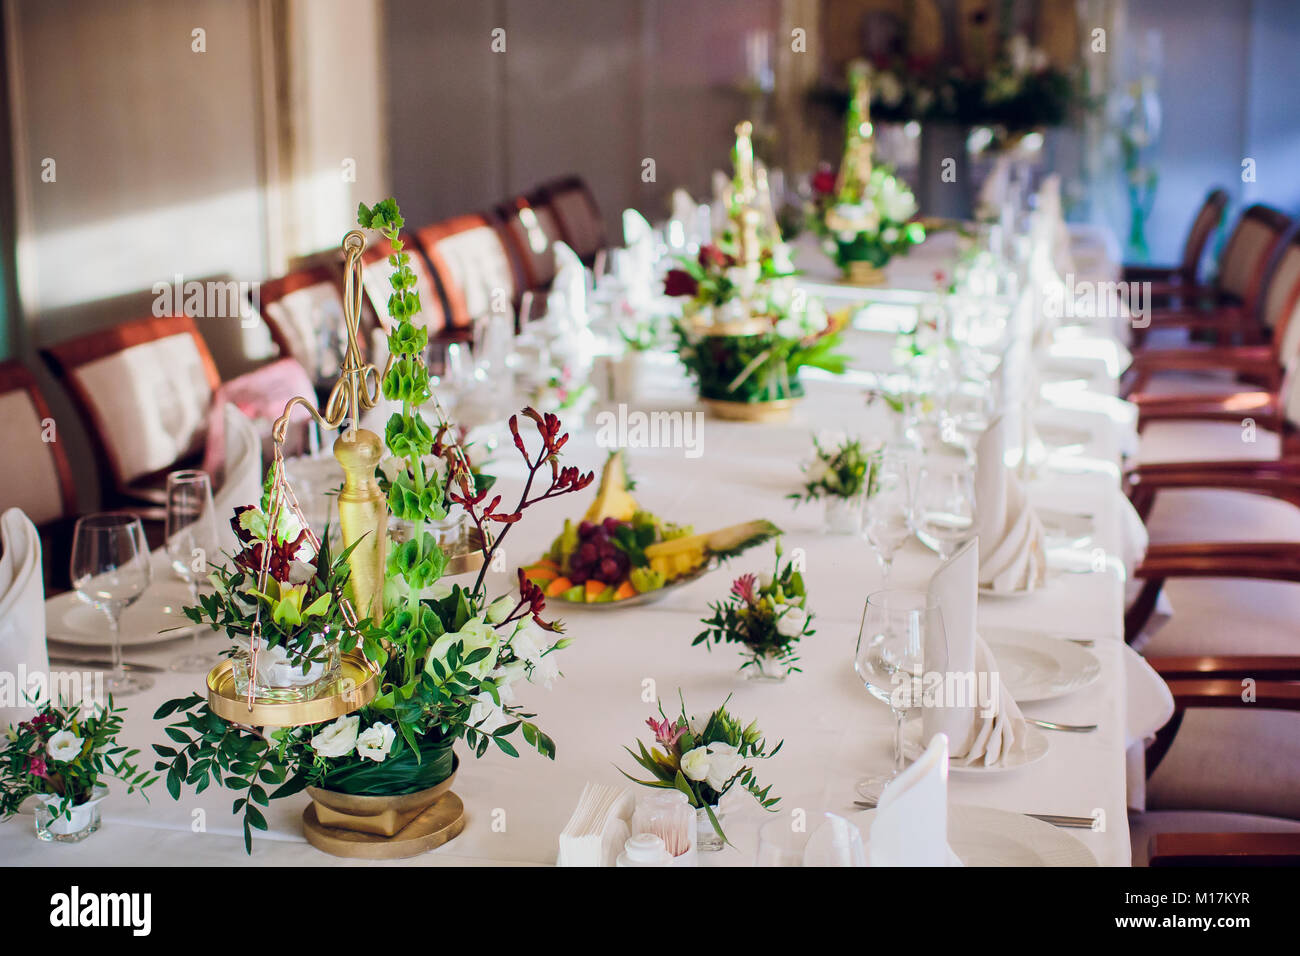 Wedding Reception Table Setting Aerial Top View Stock Photo